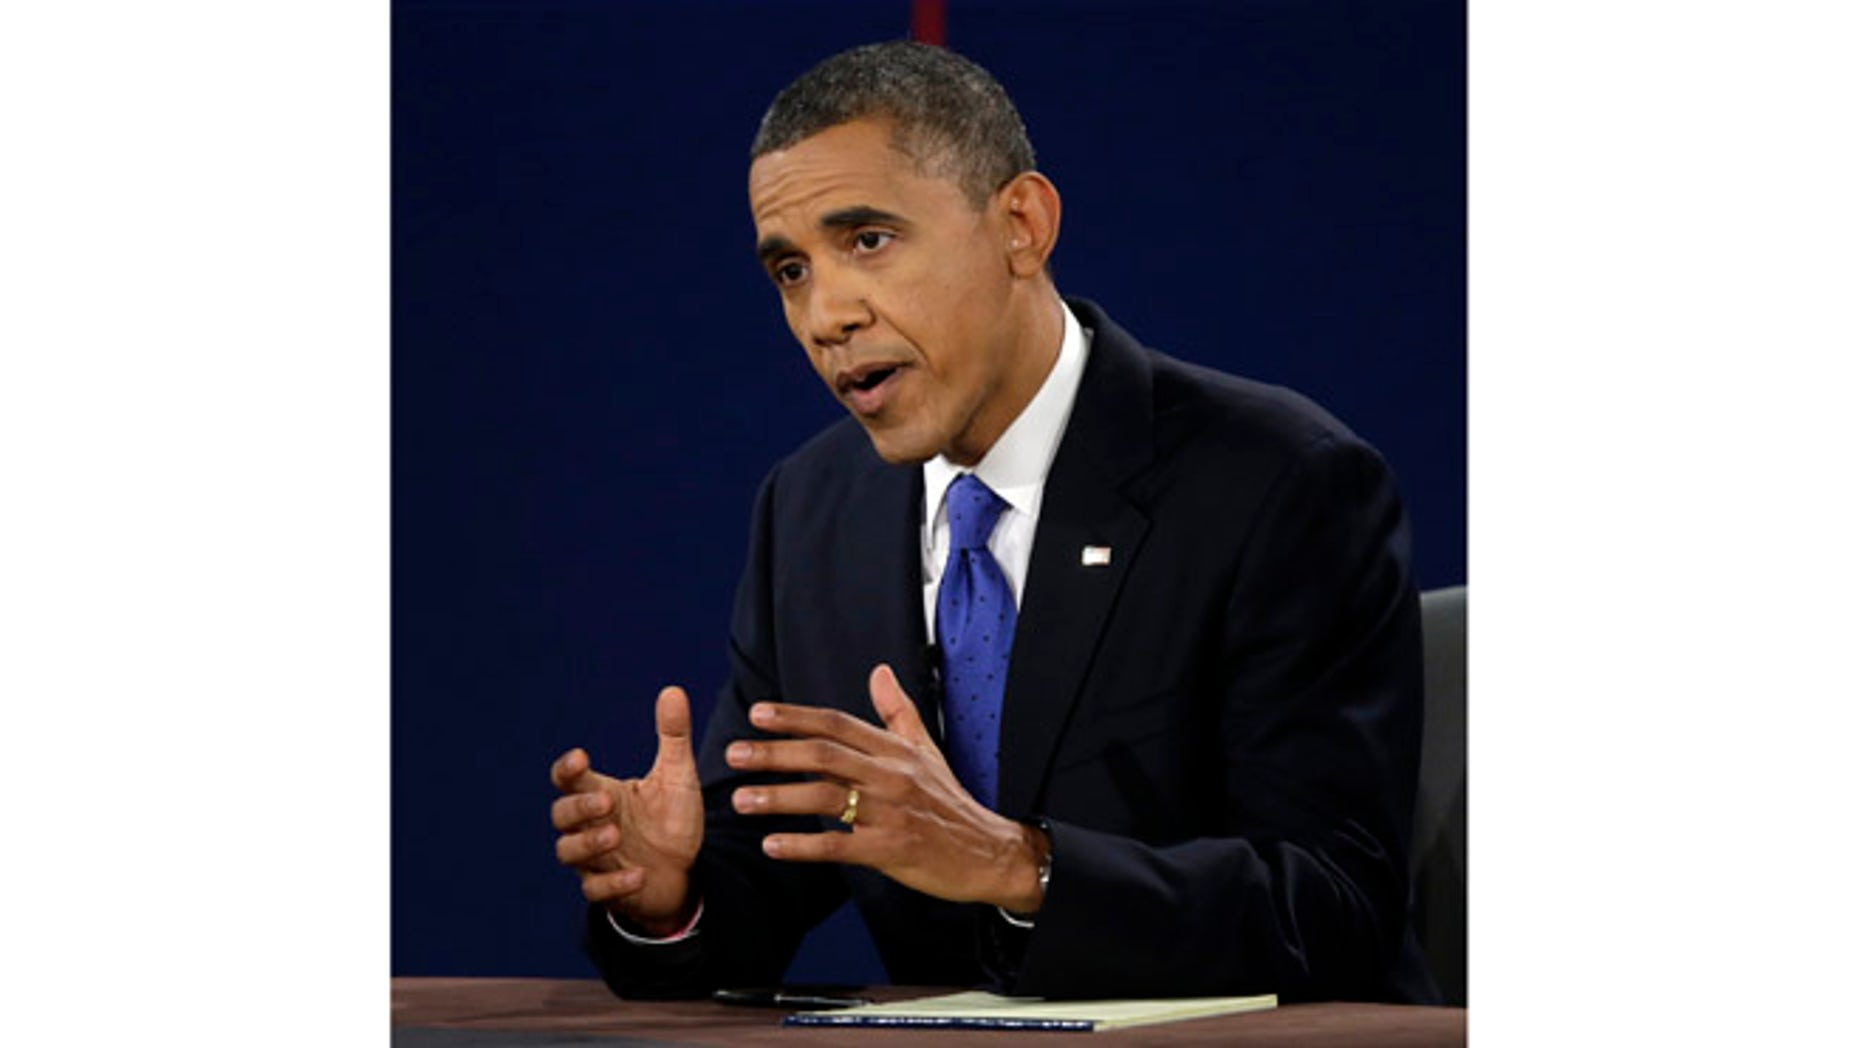 Oct. 22, 2012: President Barack Obama answers a question during the third presidential debate at Lynn University in Boca Raton, Fla.